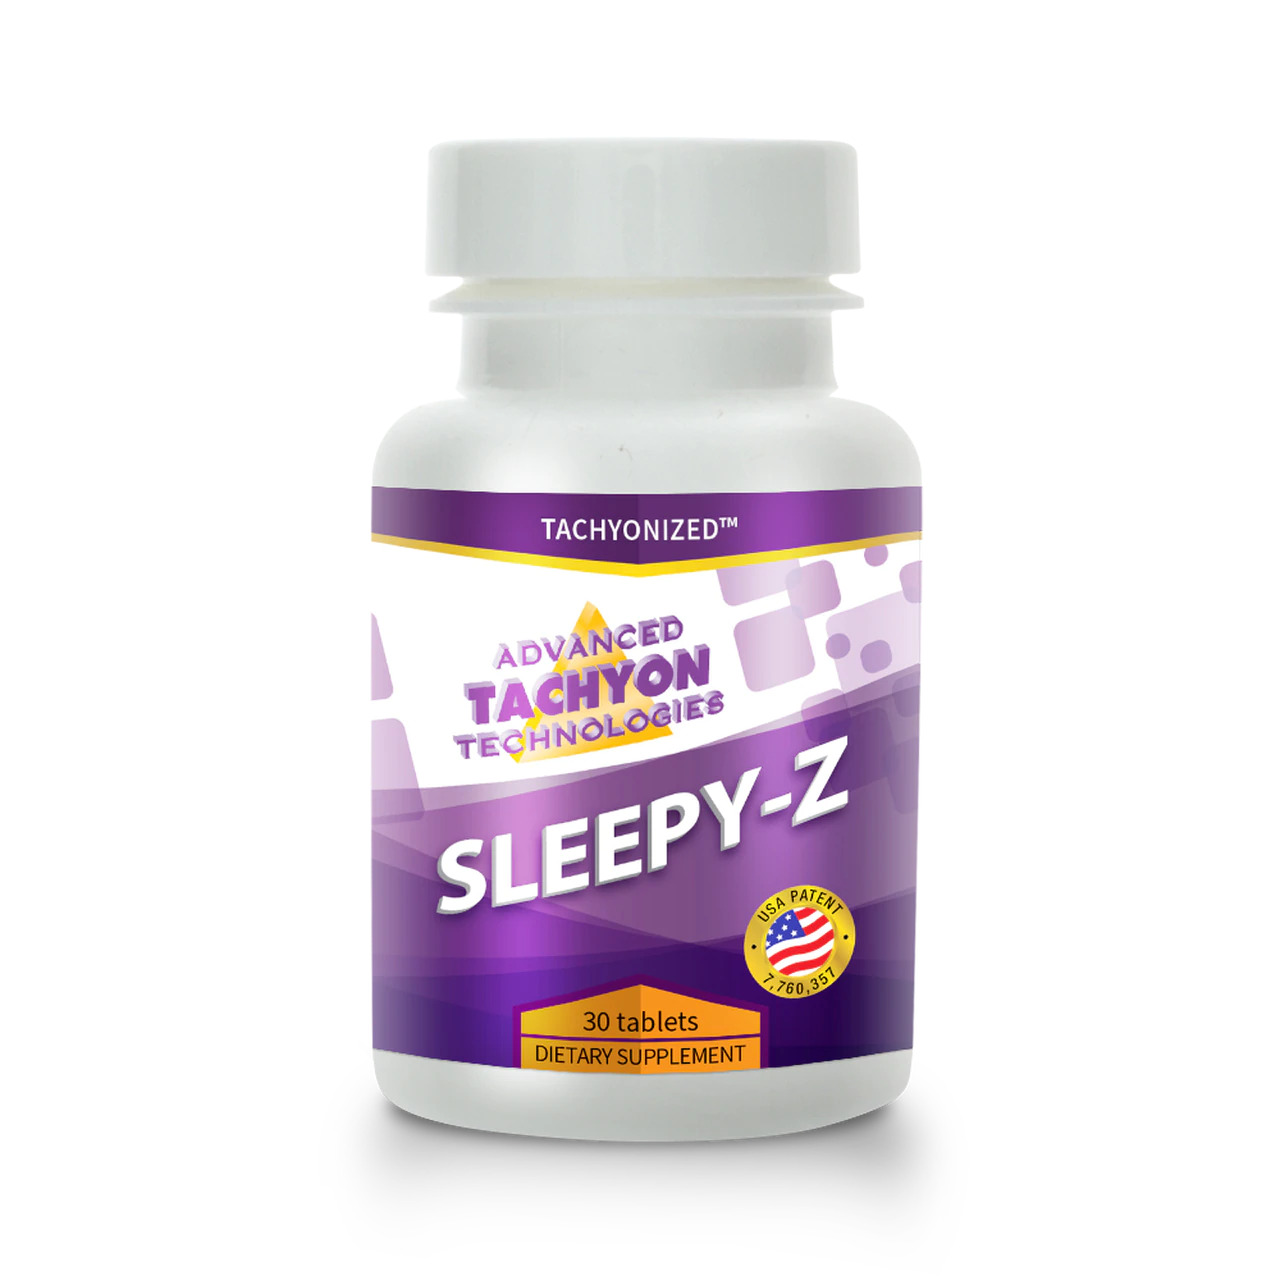 Tachyon-Sleepy-Z-MelatoninTachyon-Sleepy-Z-Melatonin